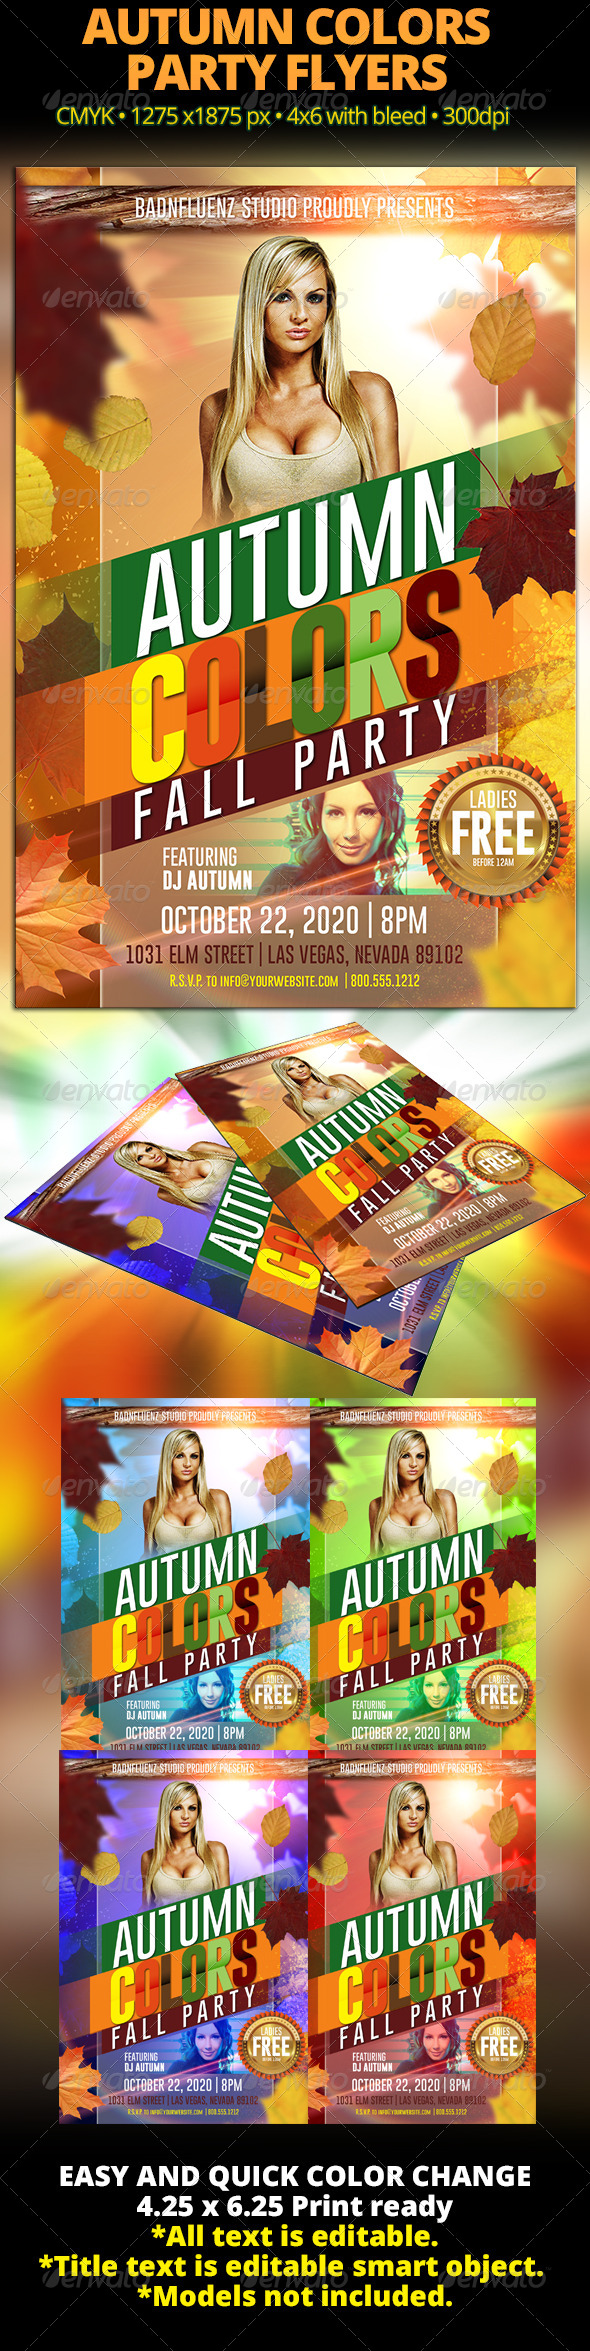 GraphicRiver Autumn Colors Fall Party Flyer 5759632